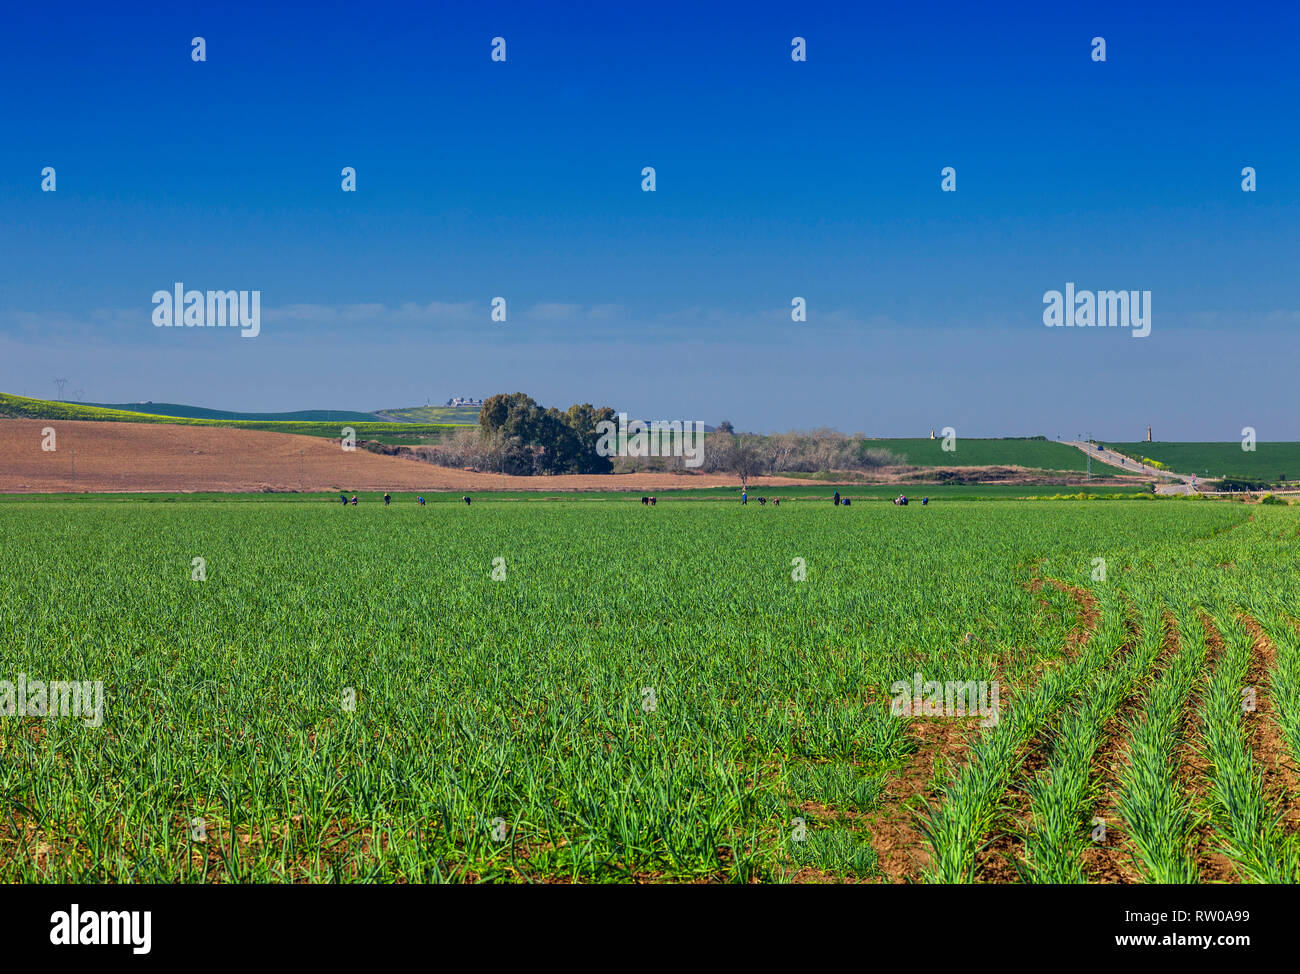 Early spring with a line of farm labourers tending crops in fields near Cordoba, Andalucia, Spain - Stock Image